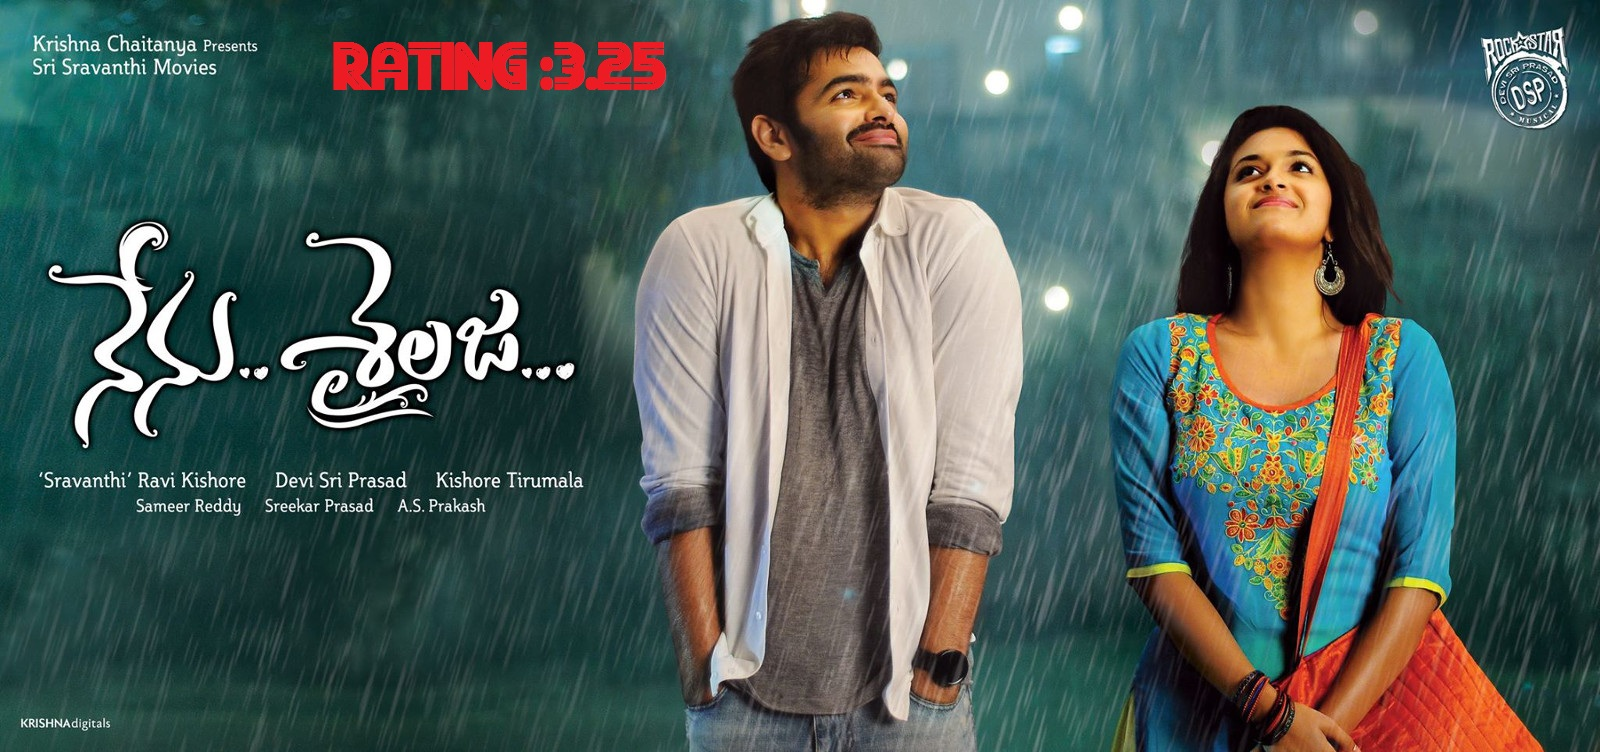 Nenu Sailaja Review - A Different Kind of Love Story